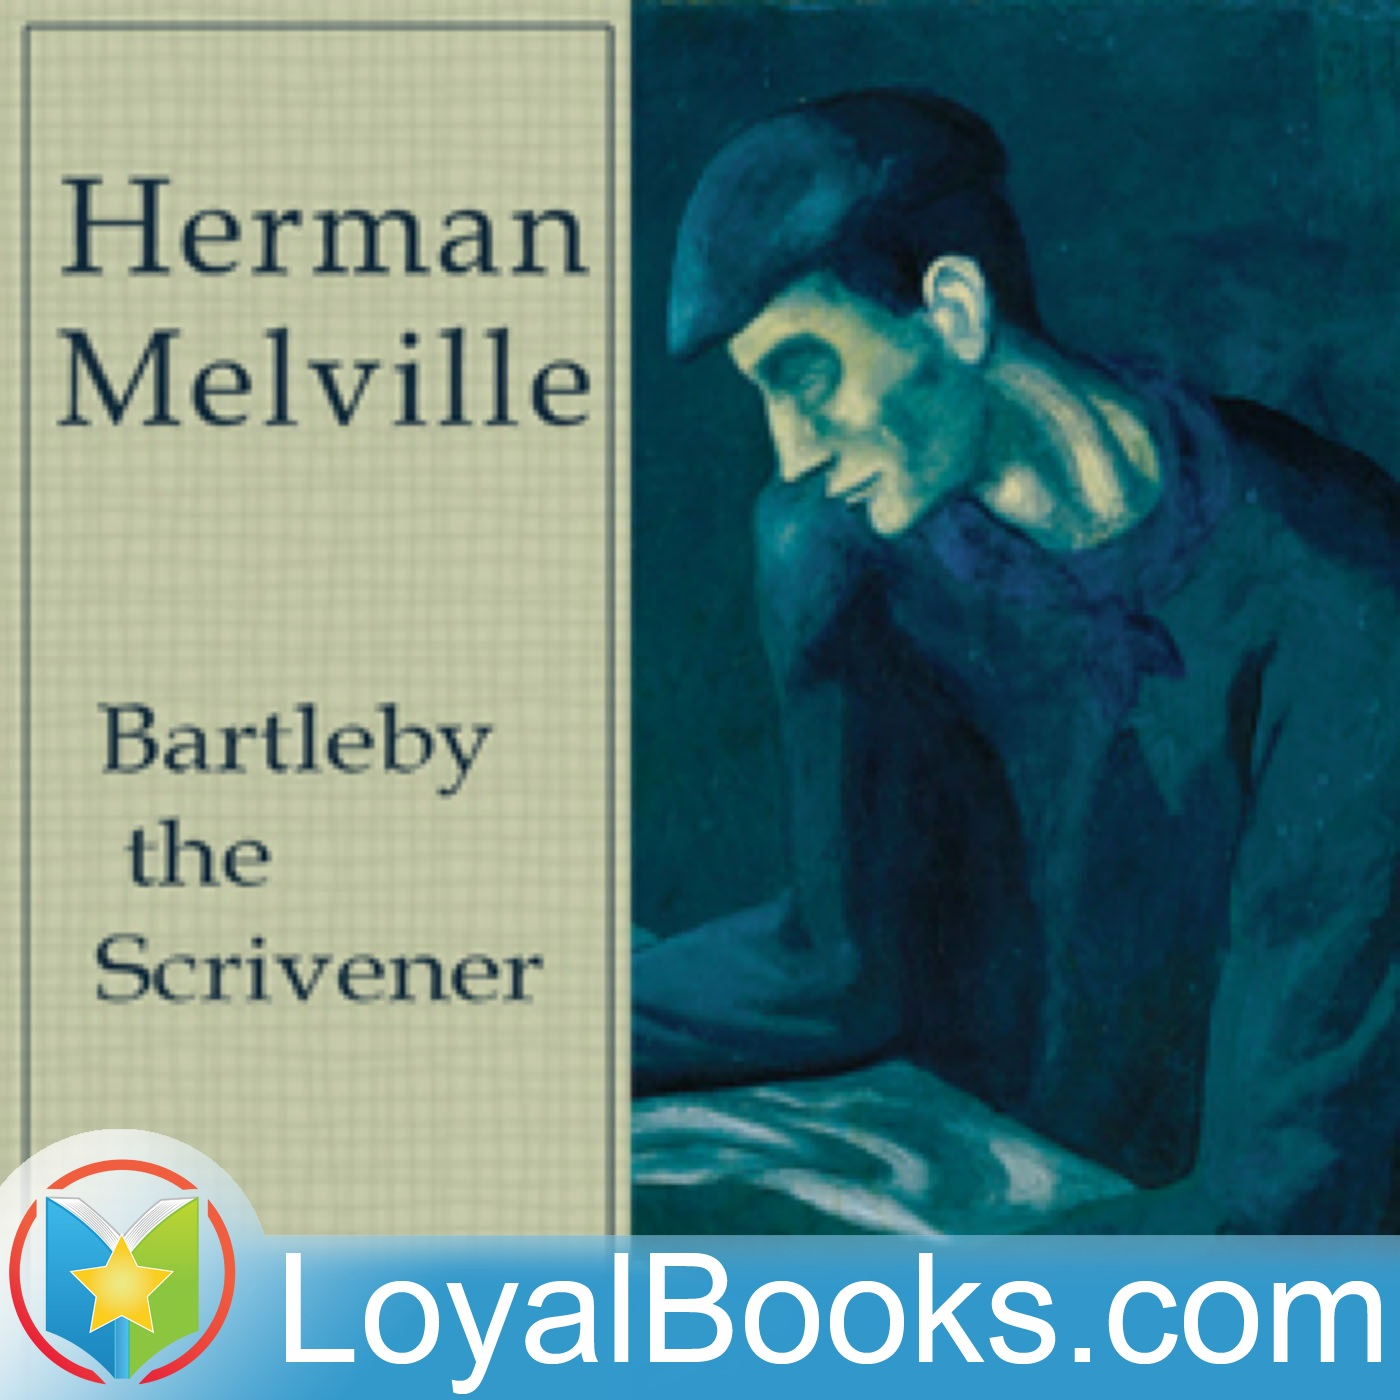 the limit of compassion in the novel bartleby the scrivener by herman melville What are your thoughts on bartleby the scrivener by herman melville submitted 1 year ago by bikasz i just finished reading it and got curious about possible interpretations and thoughts on this incredible book.